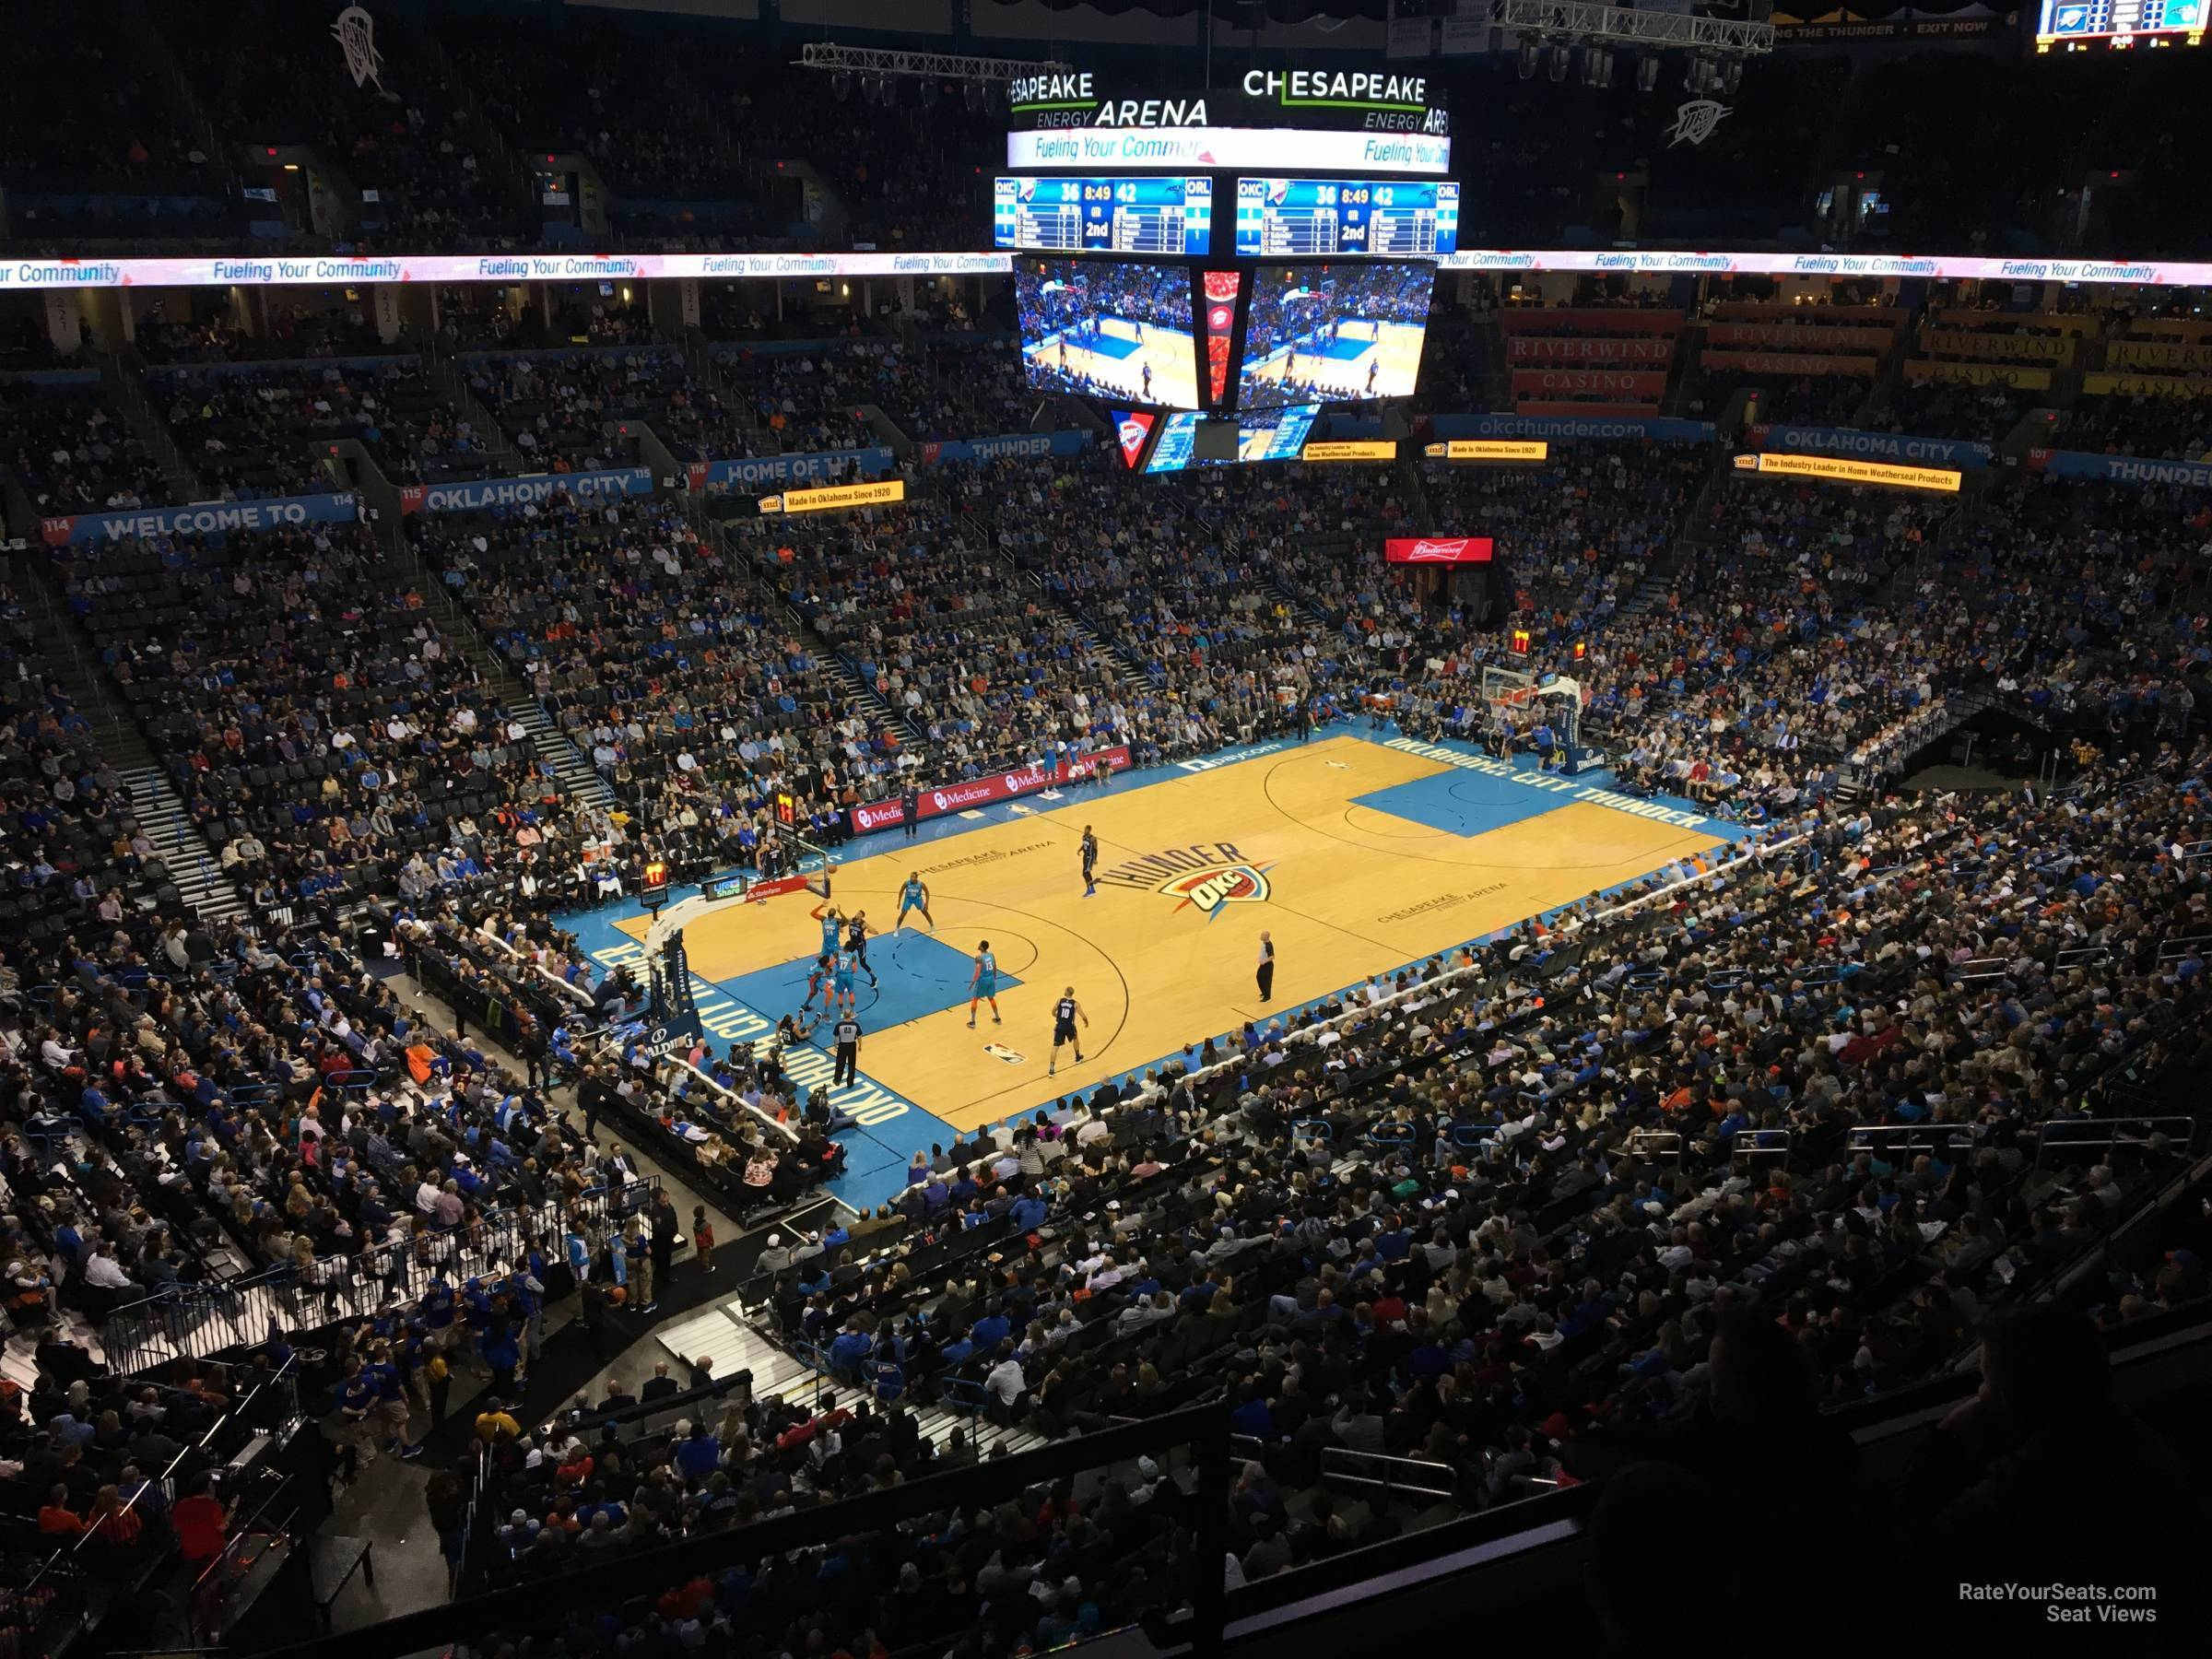 Seat View for Chesapeake Energy Arena Section 312, Row A